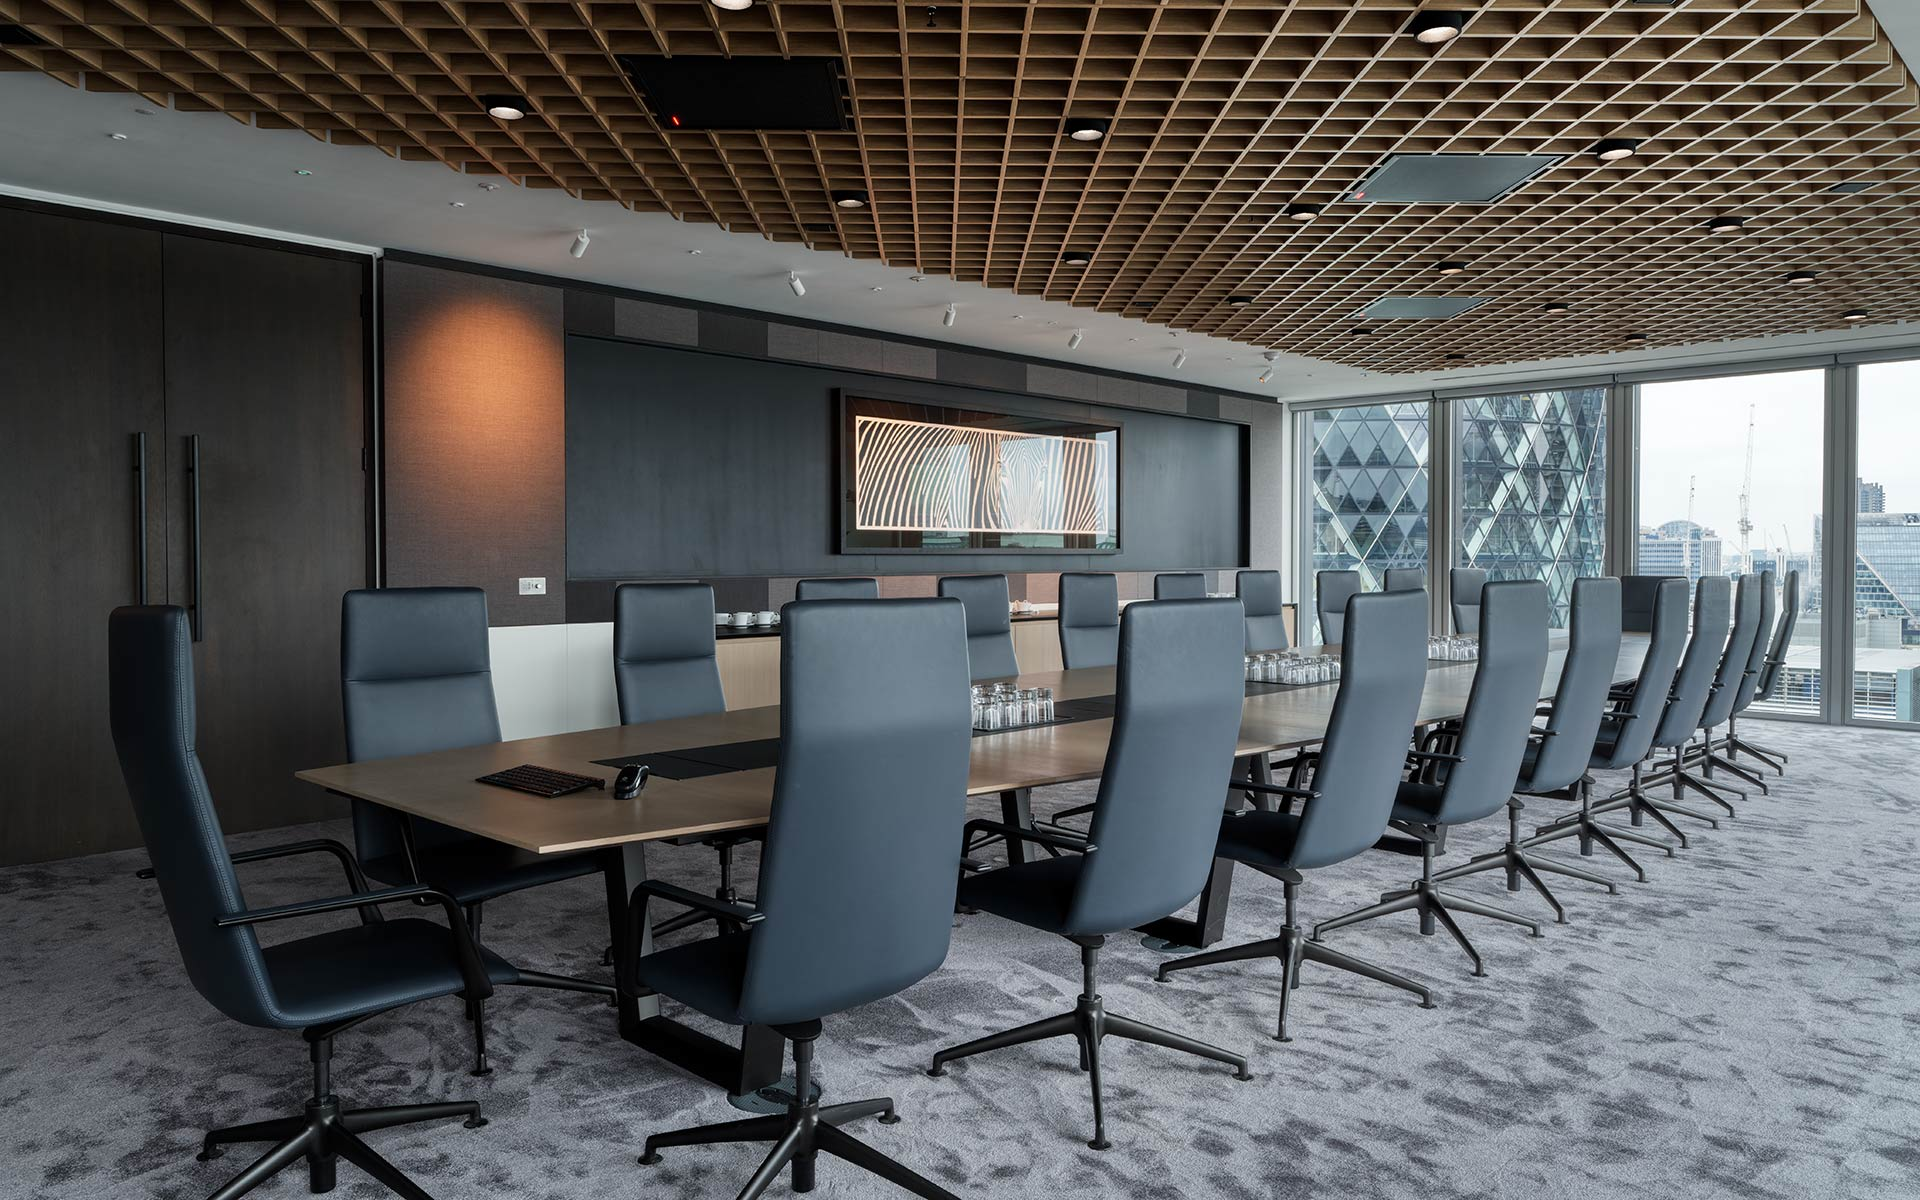 Long boardroom table with latticed ceiling and views to the Gherkin and City of London